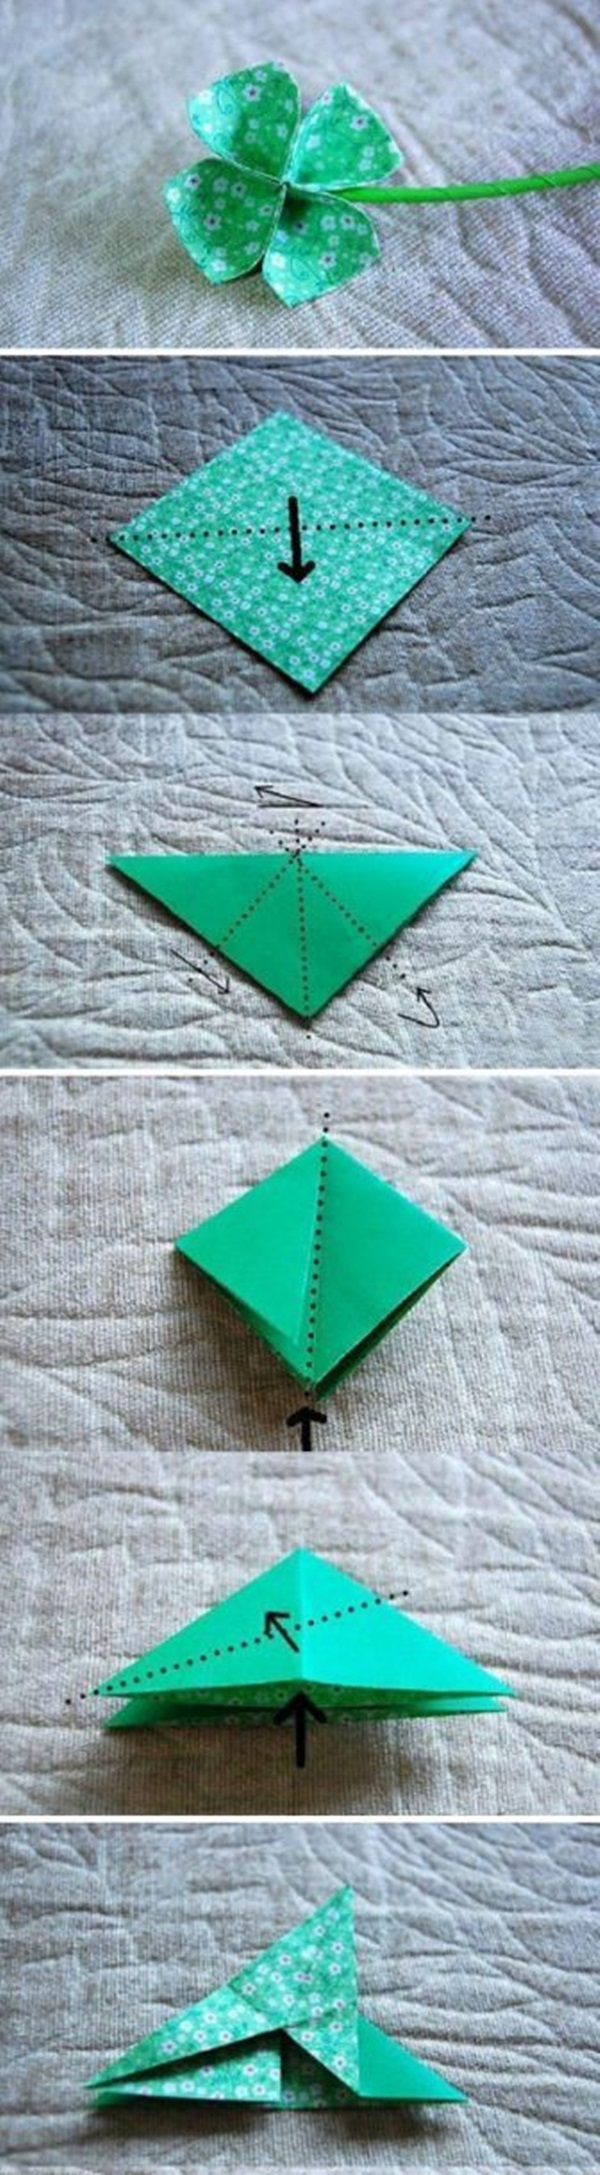 easy-origami-for-kids18